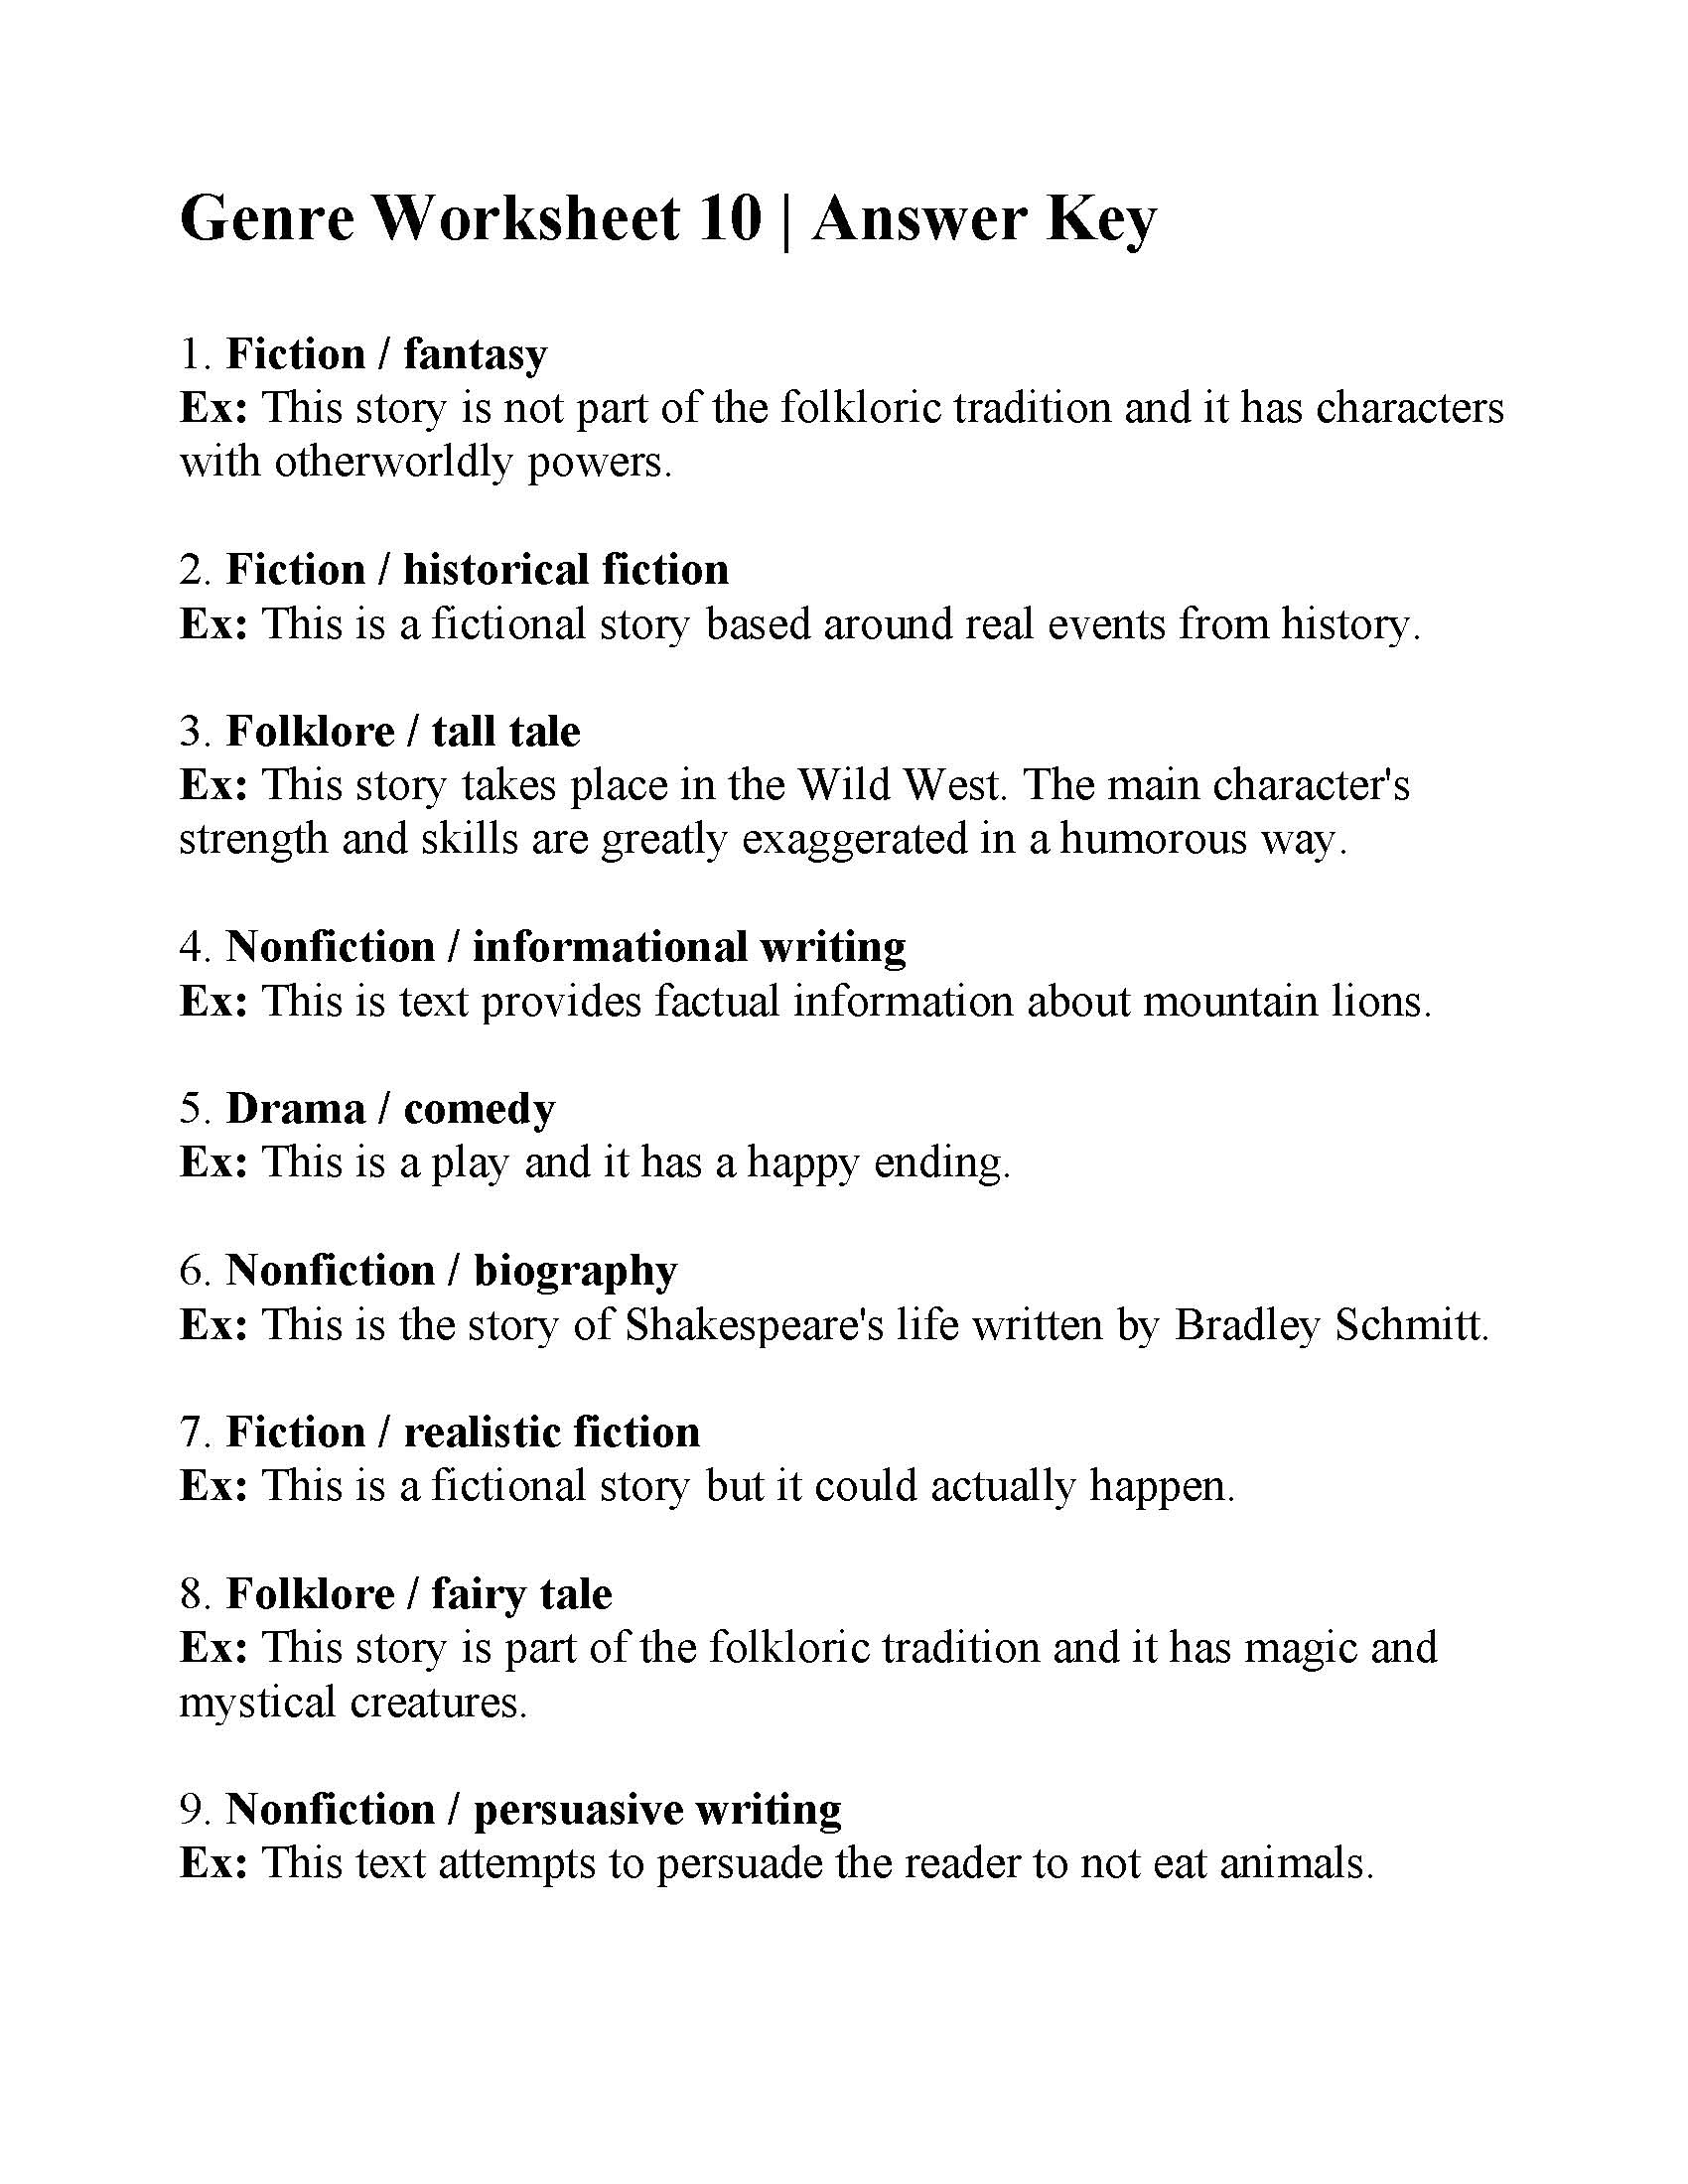 Genre Worksheet 10